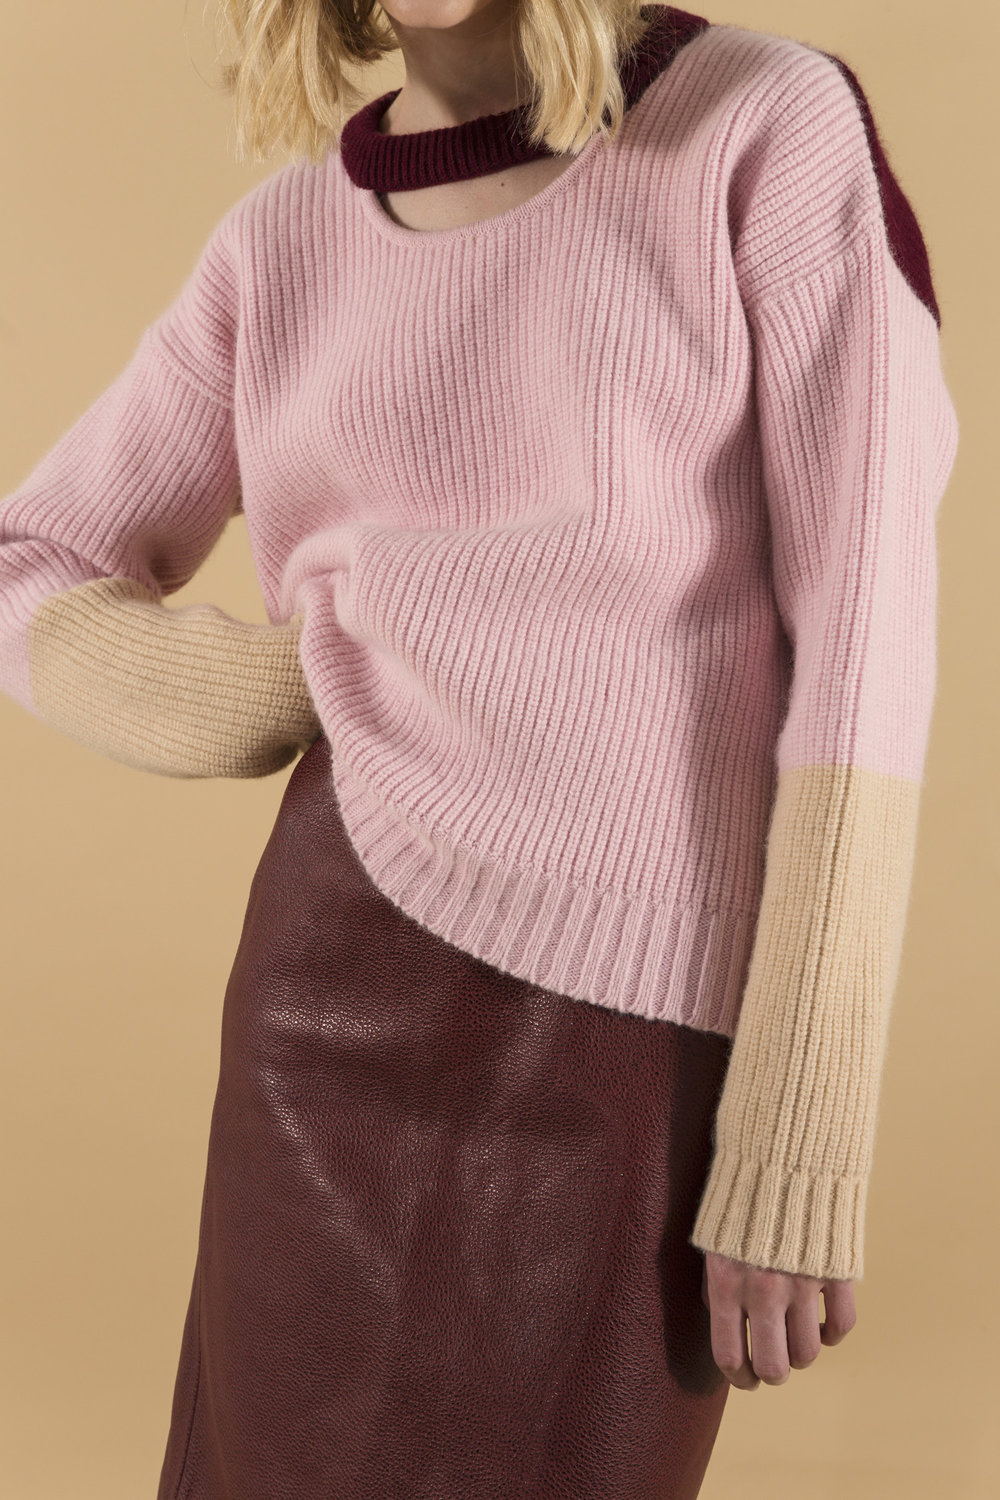 Ardmore sweater, close up.jpg